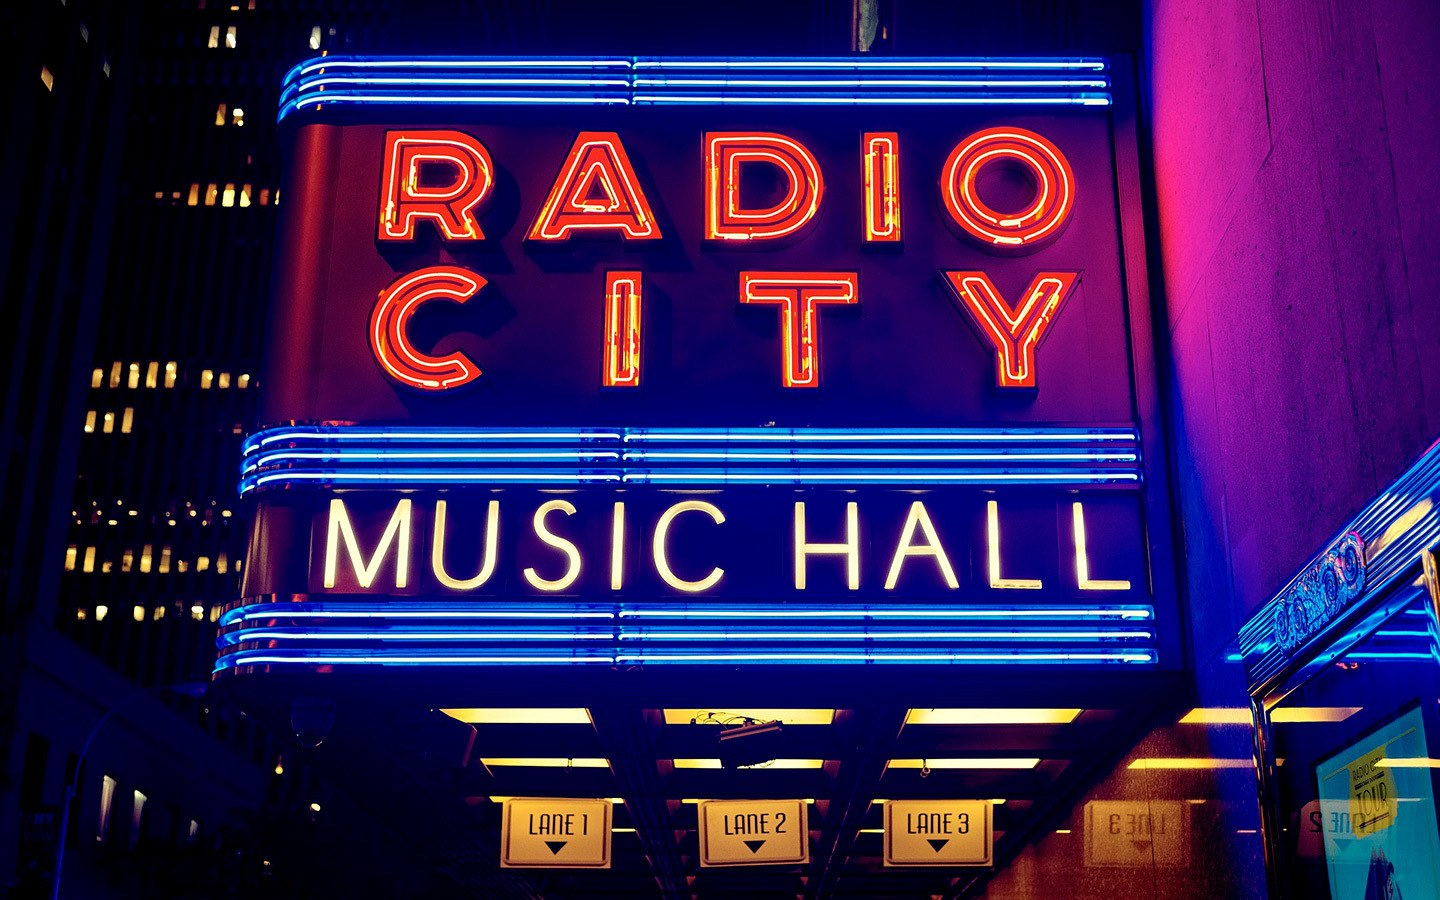 Neon signs at the Radio City Music Hall in New York